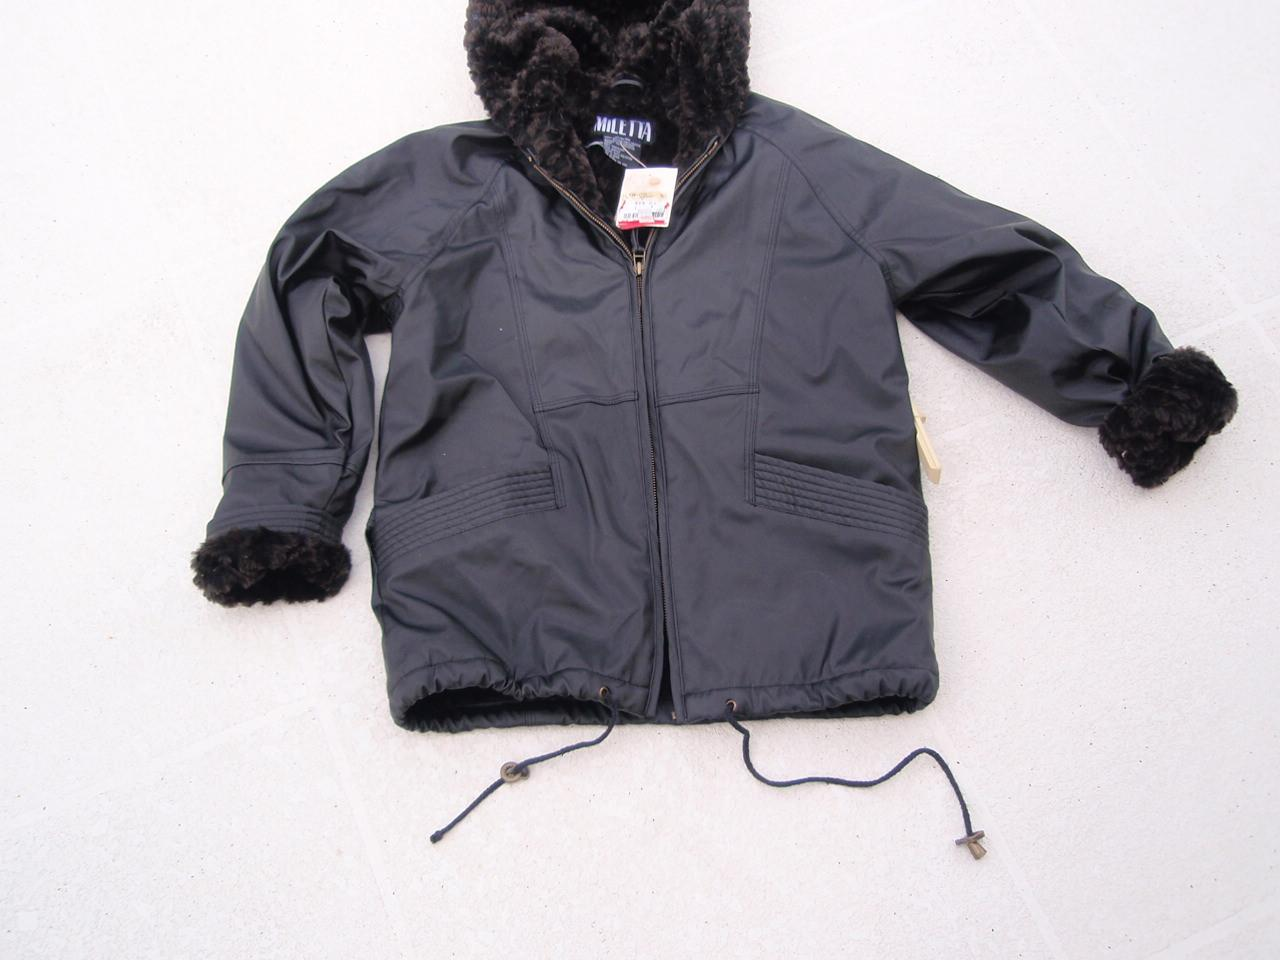 Recalled Miletta jacket